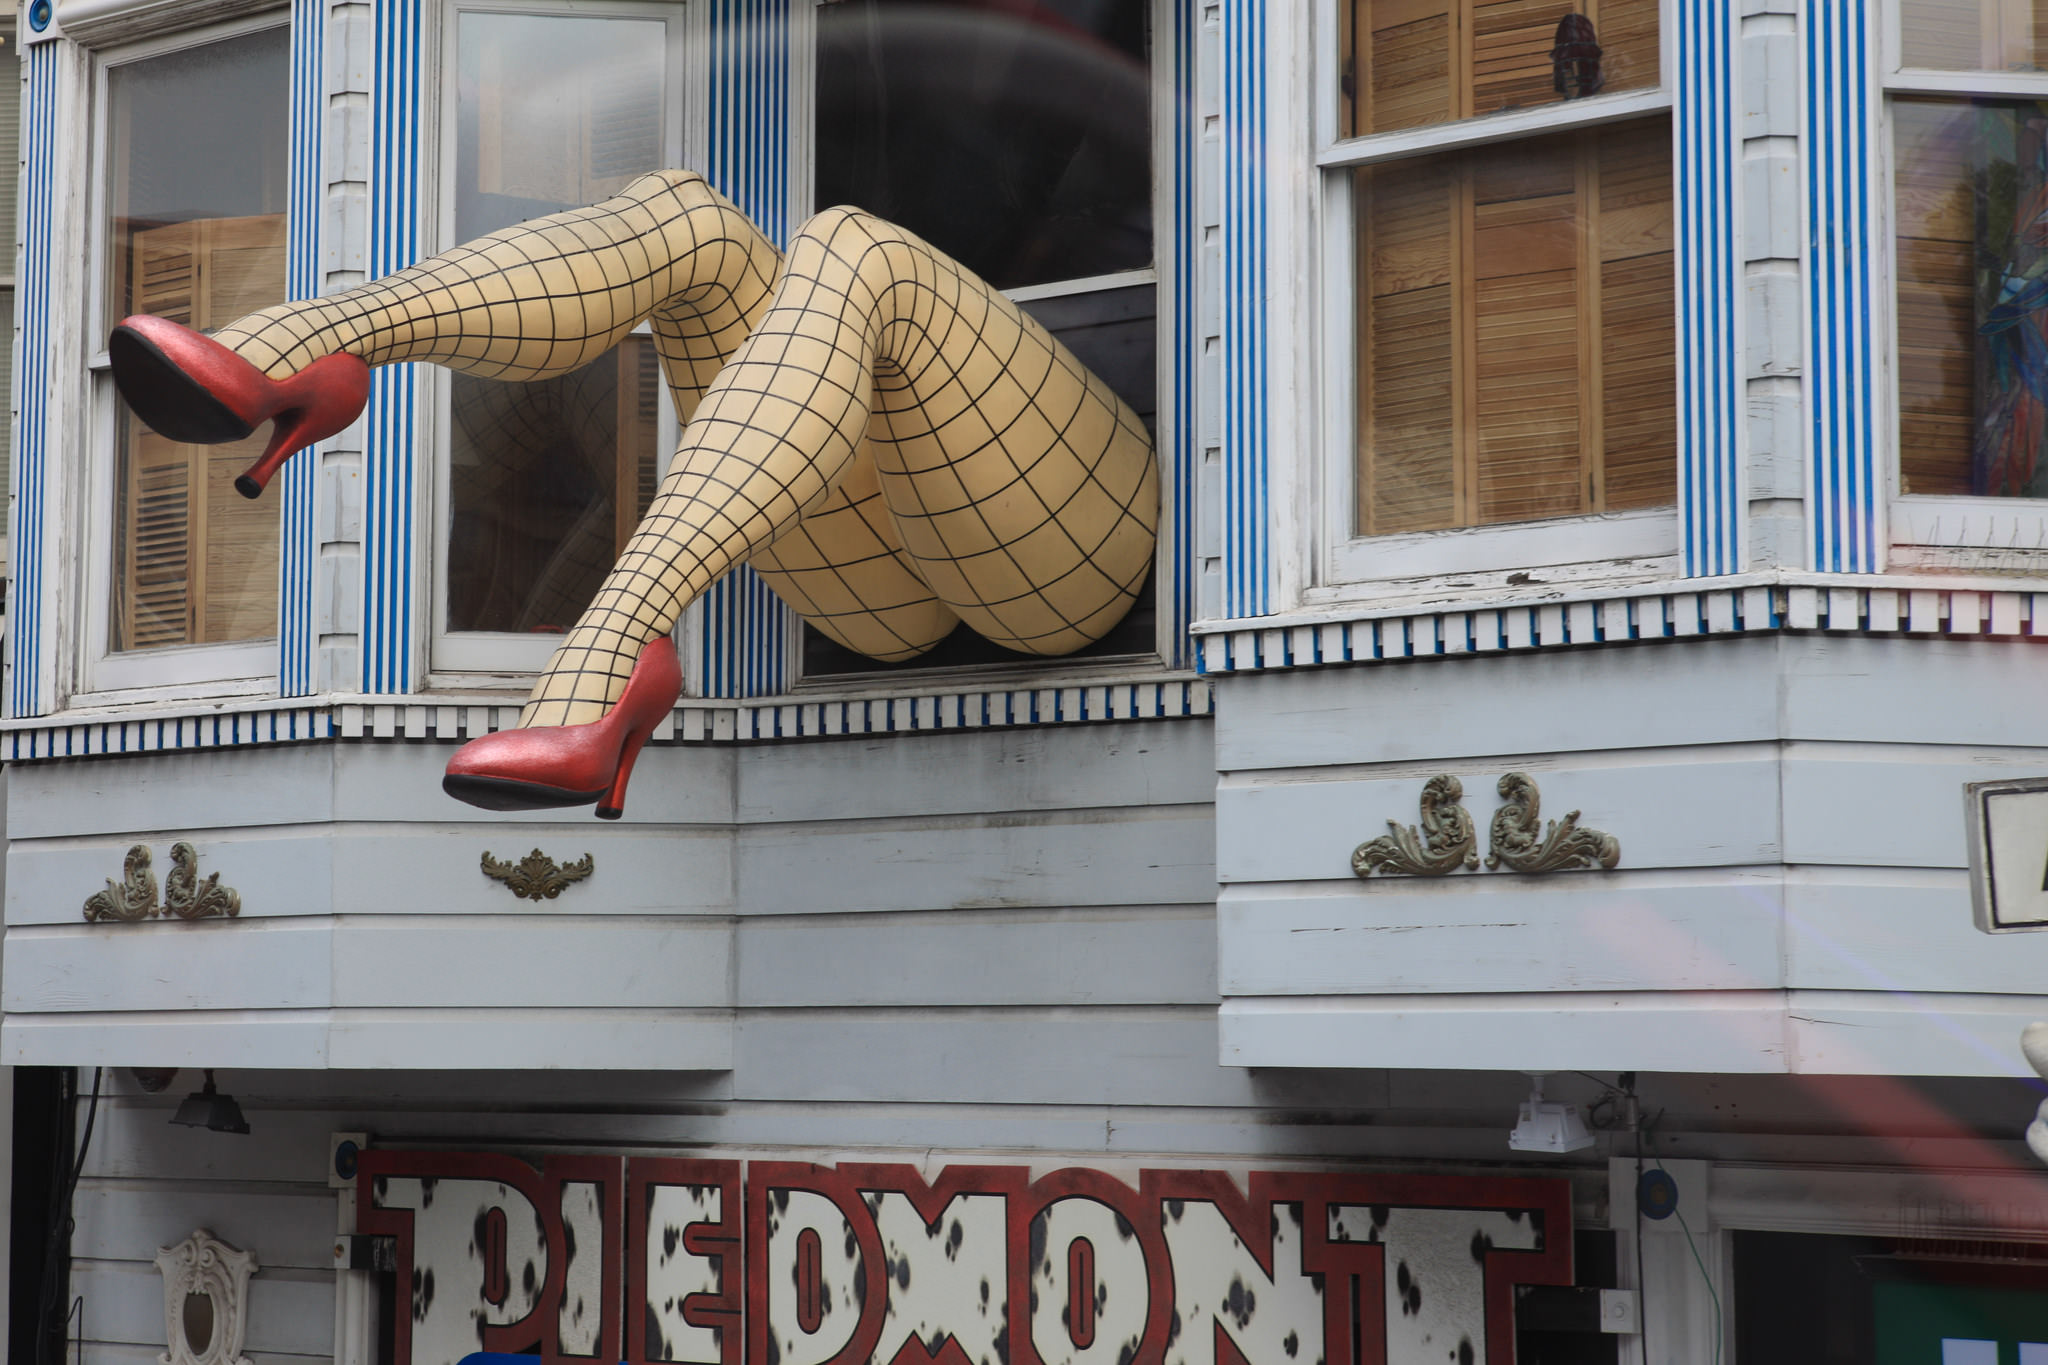 One of the Best Bay Area Tours in San Francisco is Wild SF, who stops in Haight-Ashbury